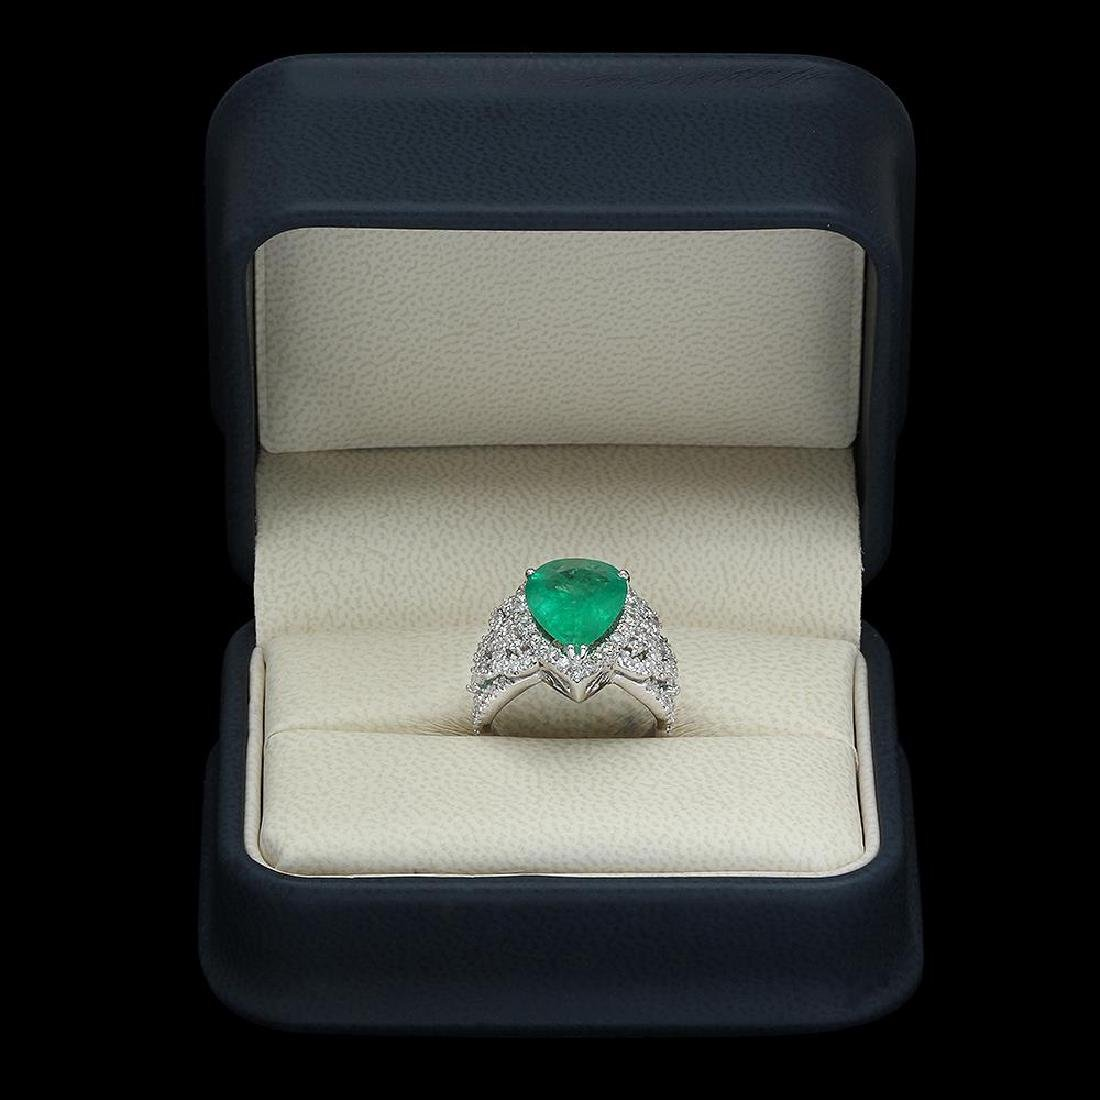 14K Gold 4.55 Emerald 1.20 Diamond Ring - 4